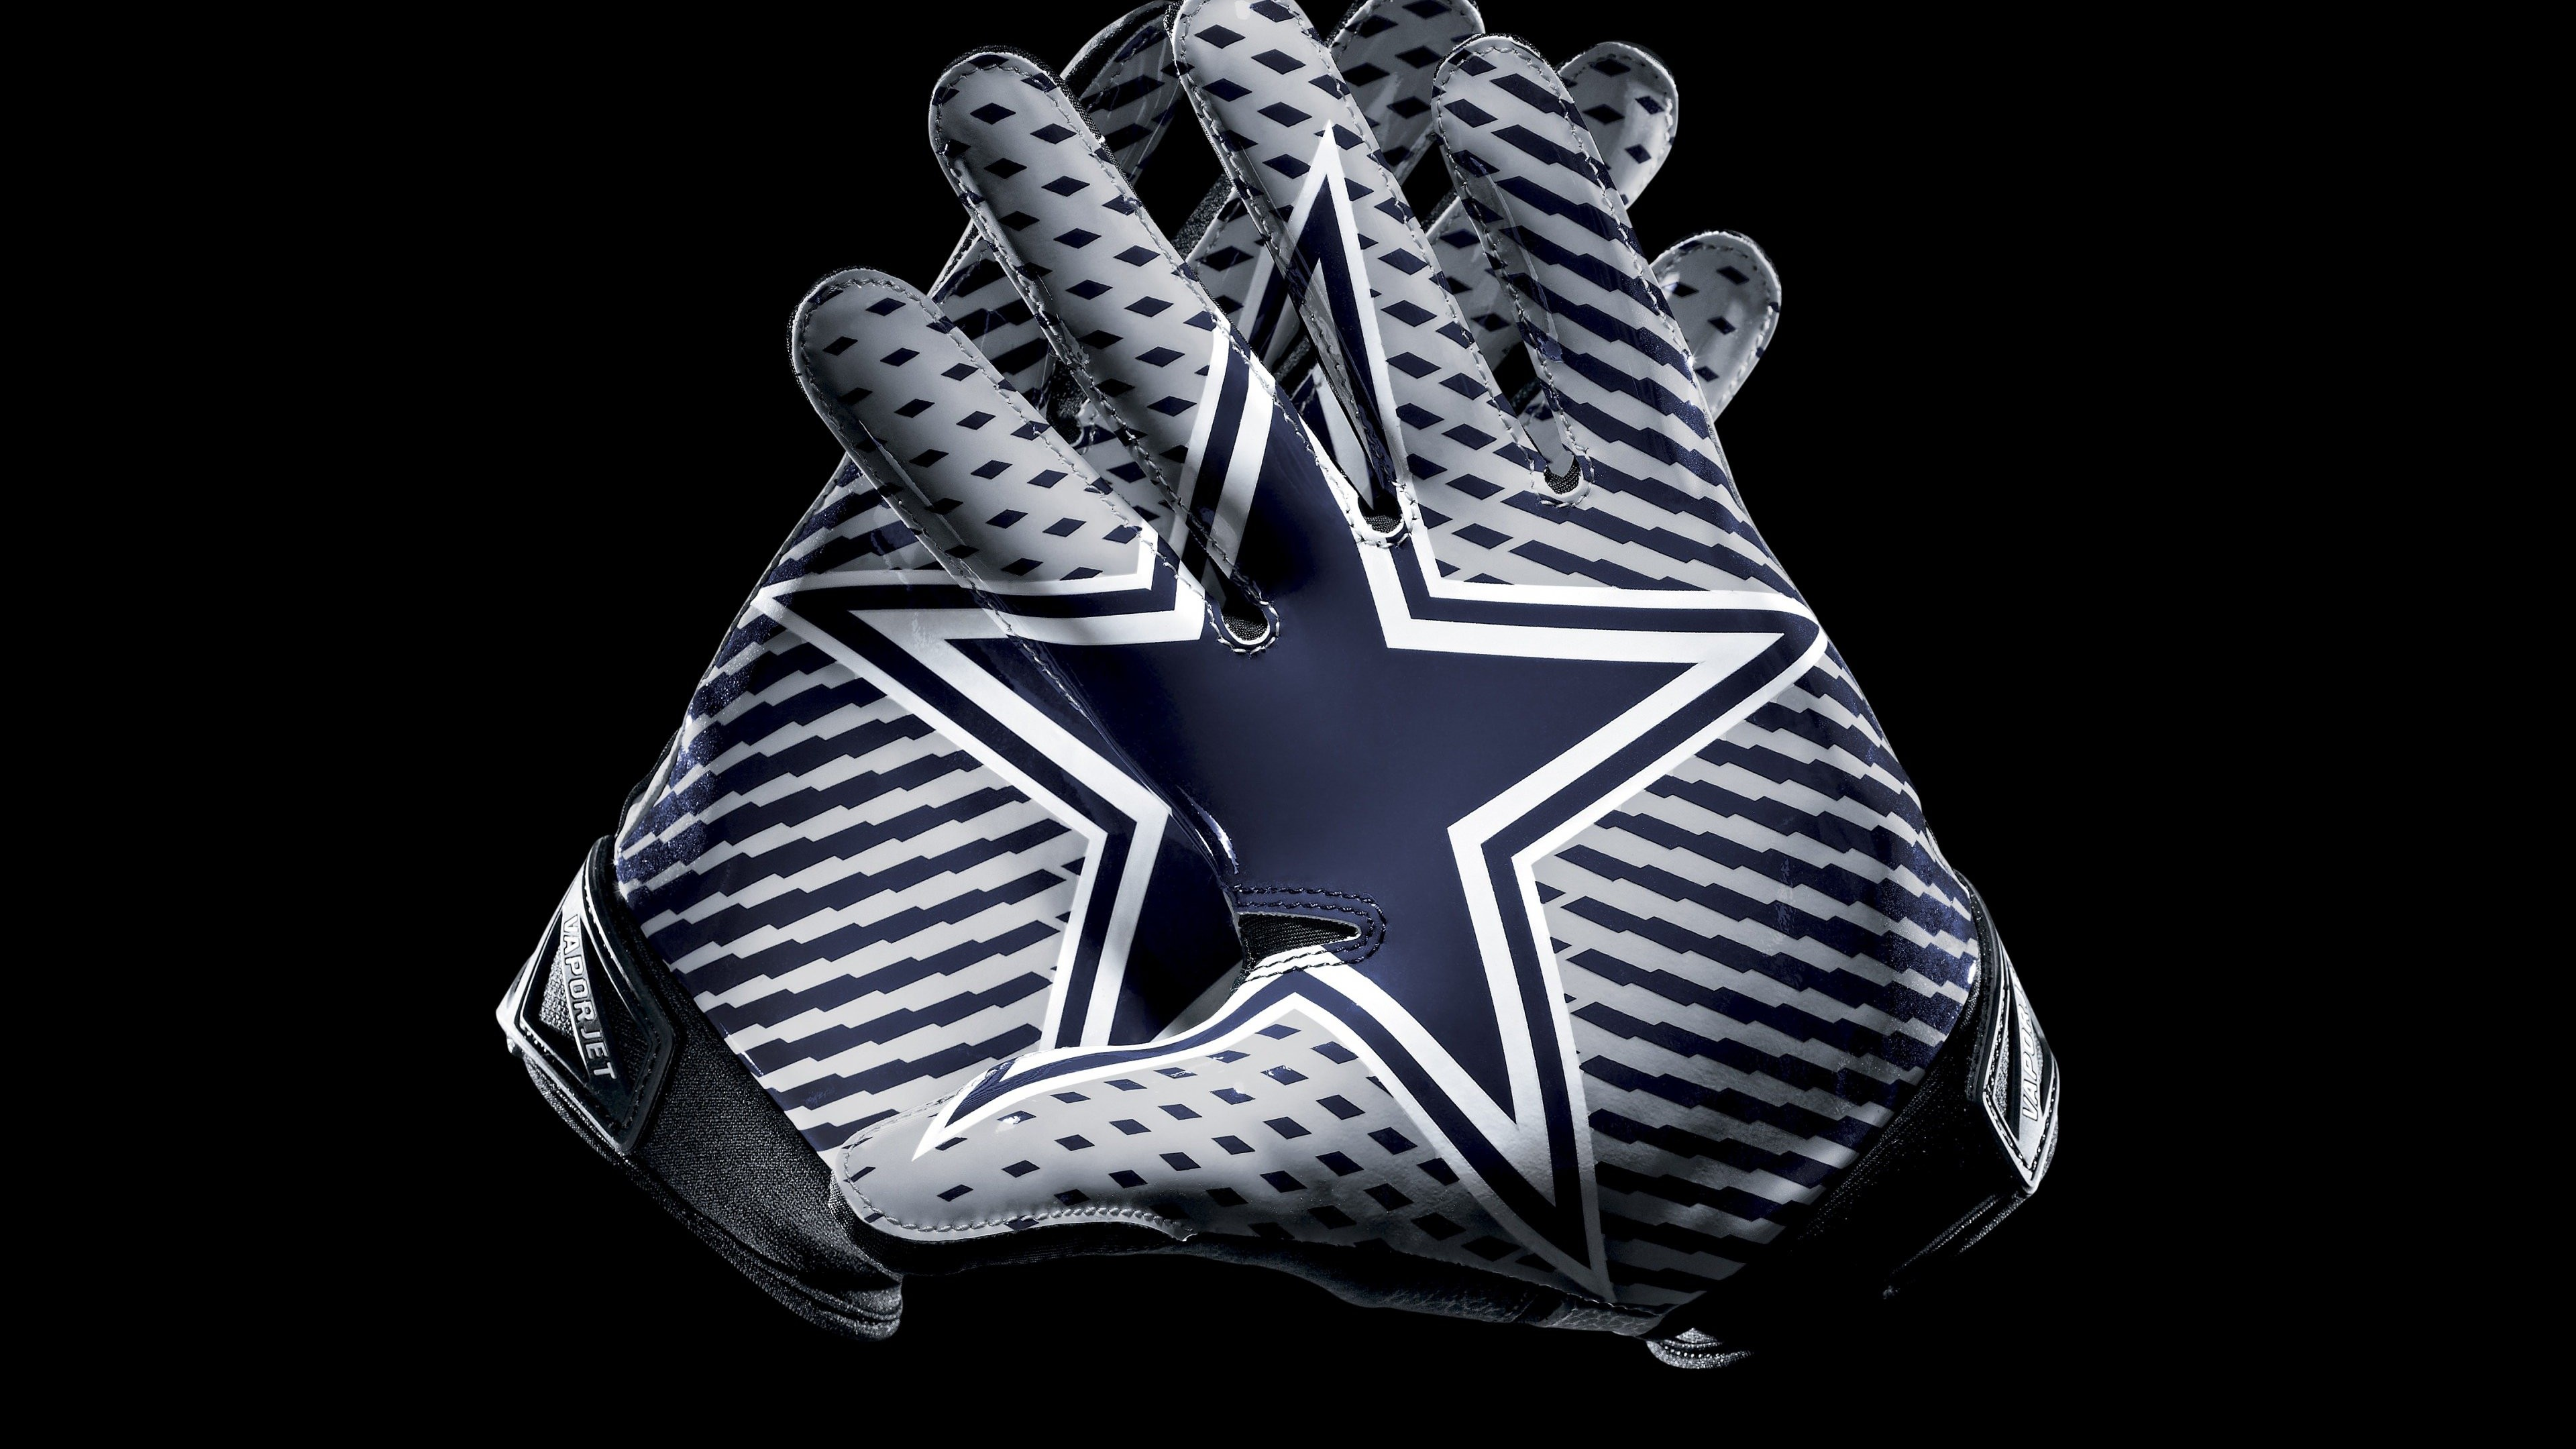 Dallas Cowboys Gloves Wallpaper for Desktop 4K 3840x2160